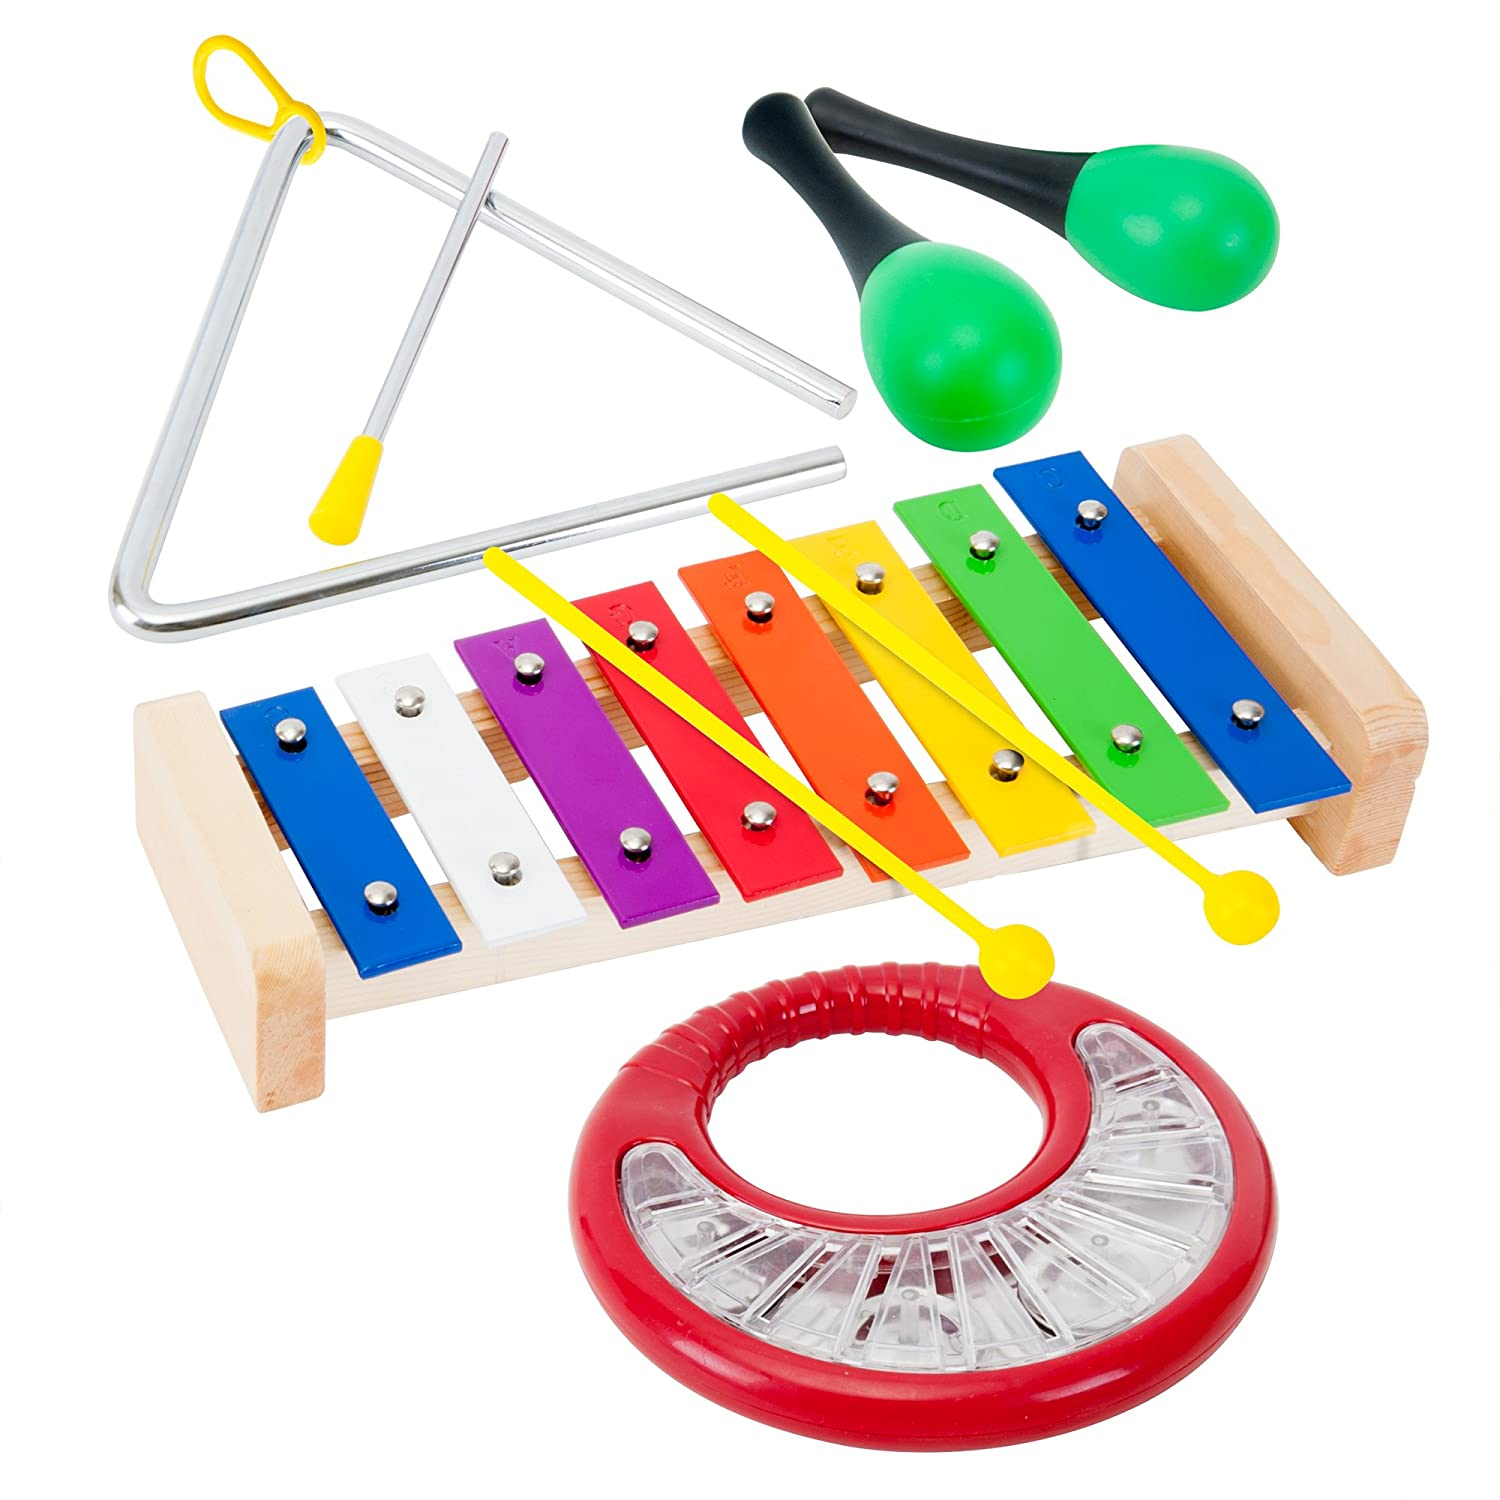 Tulatoo Toddler & Baby Musical Instruments Fun Toddlers Toys for